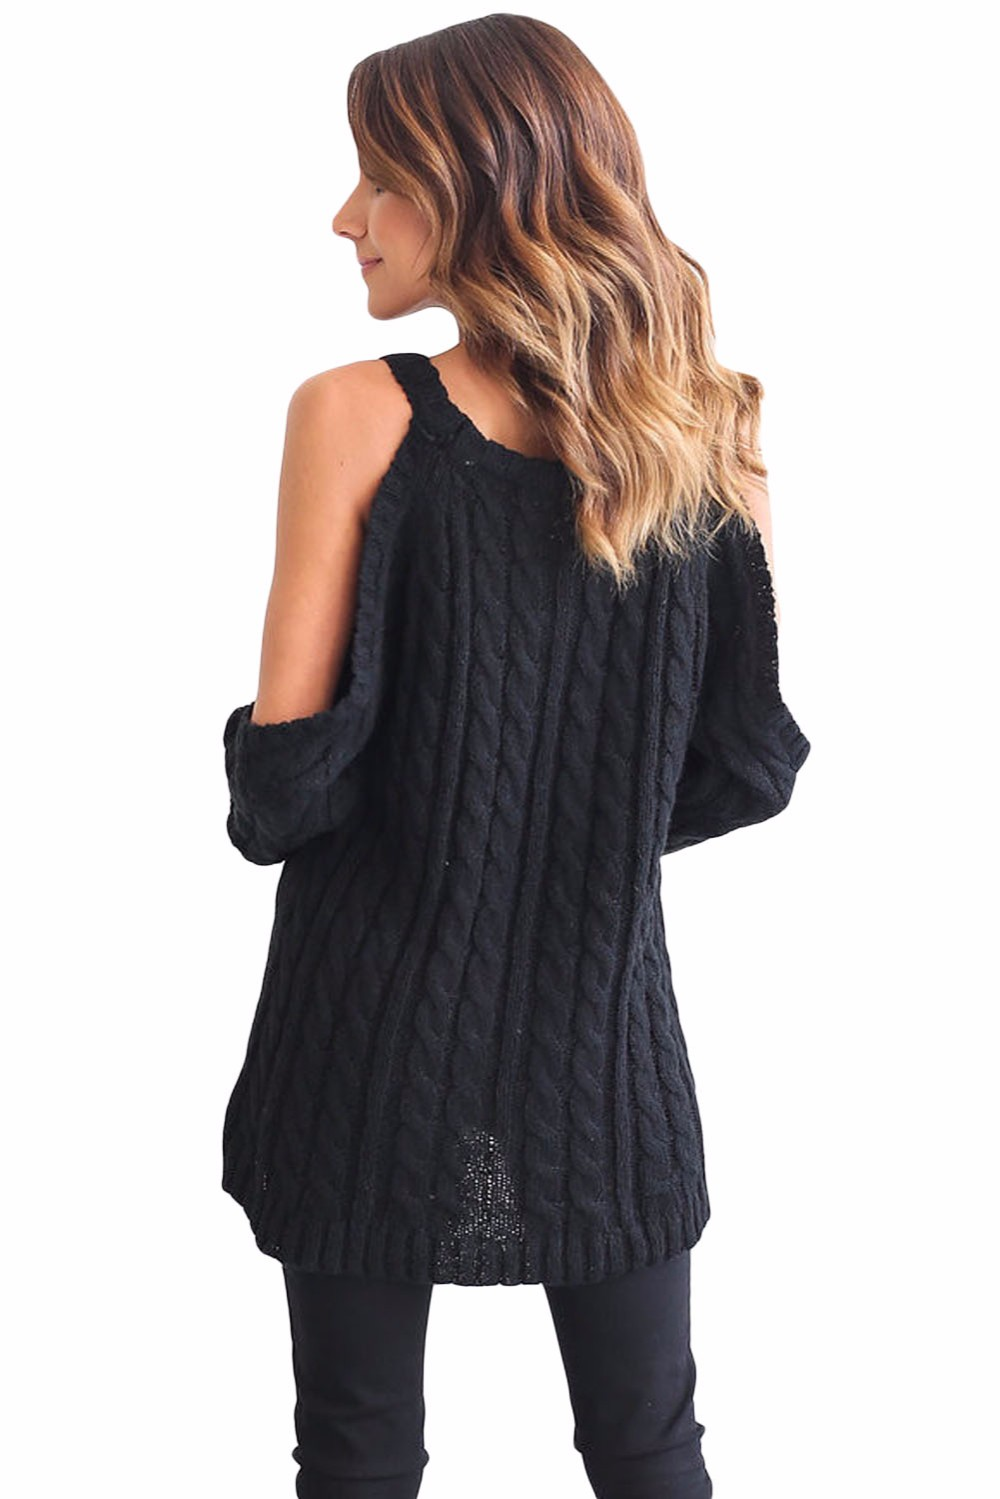 Black-Daring-Cold-Shoulder-Cable-Knit-Sweater-LC27653-2-4